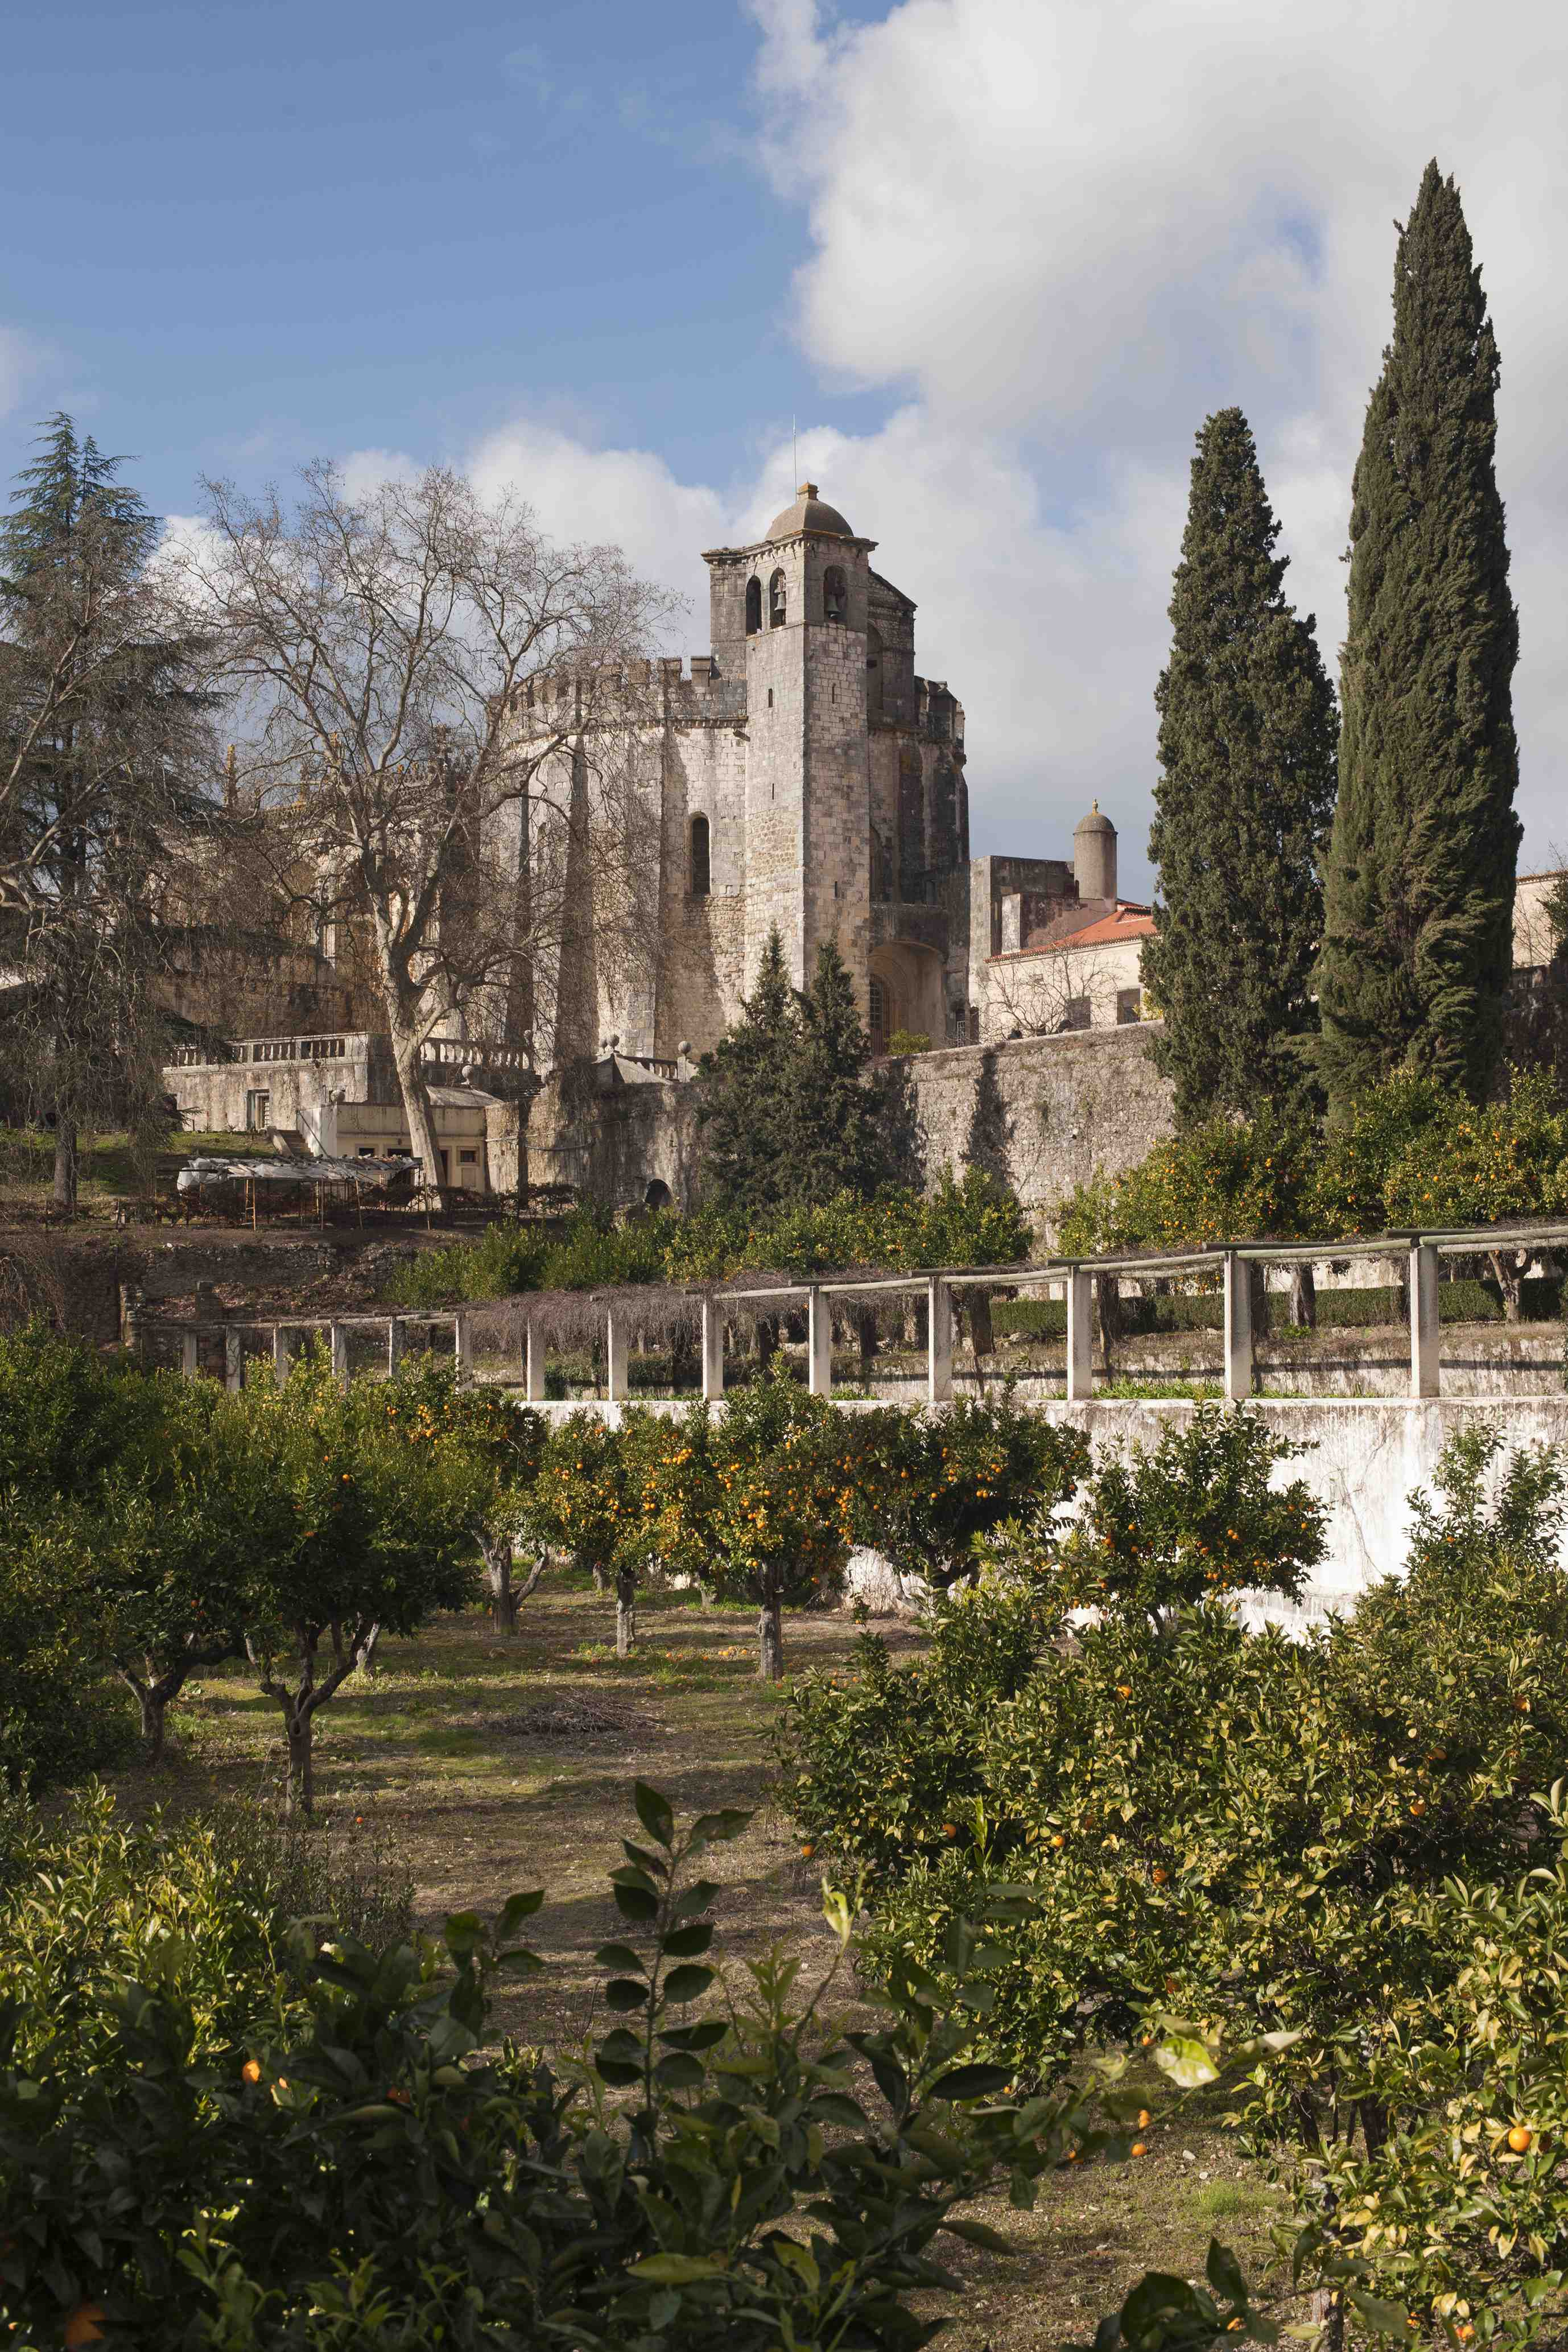 Orange groves or orchards Espinho, in which there remain testimonies of ancient Inside Village.